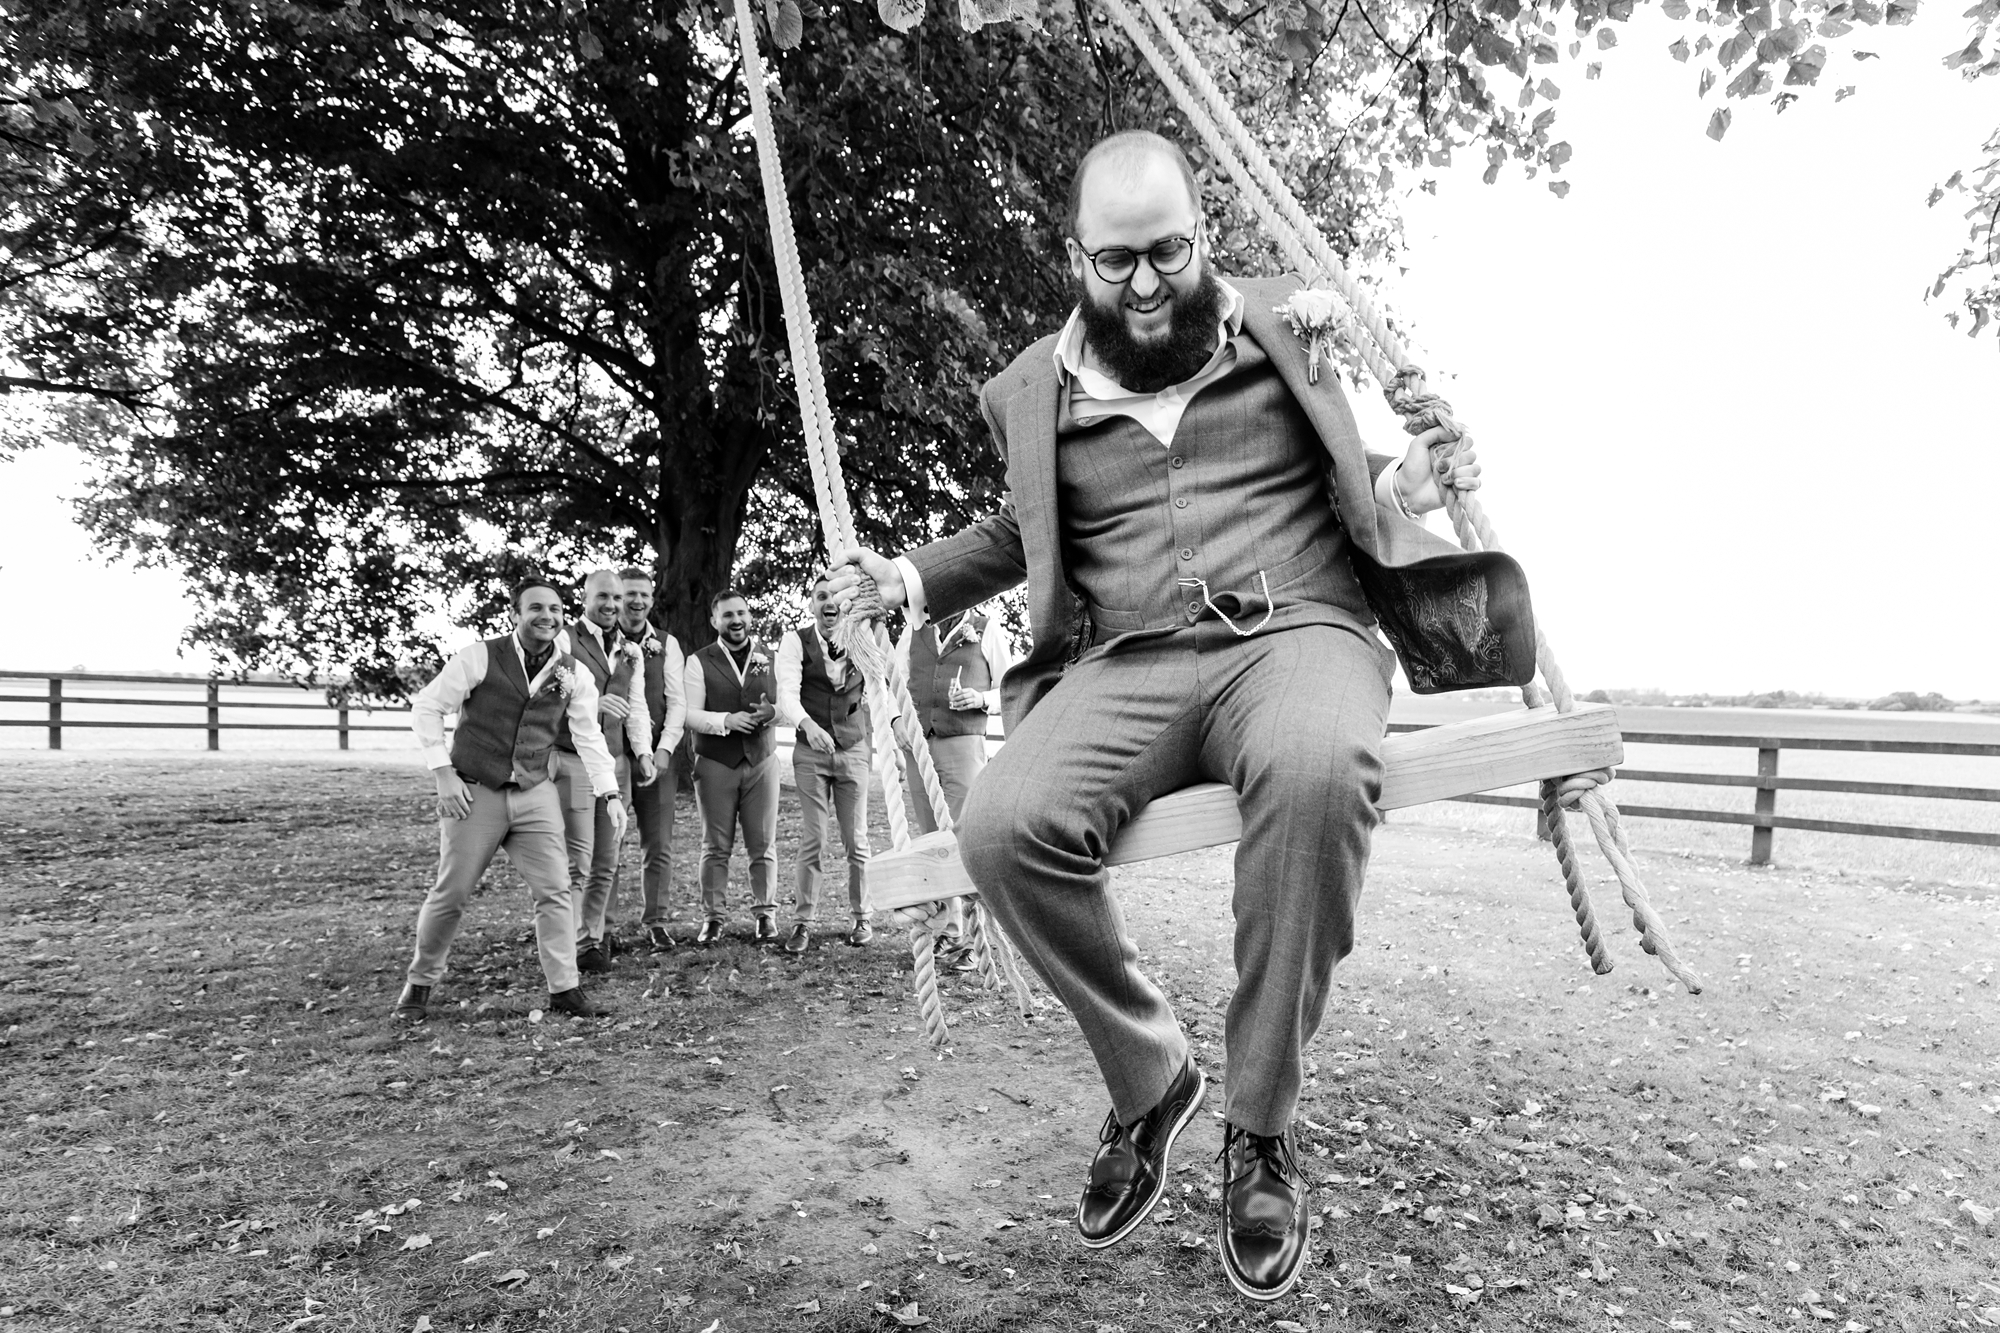 York Wedding Photography at Barmbyfield Barns funny photo of groom on swing